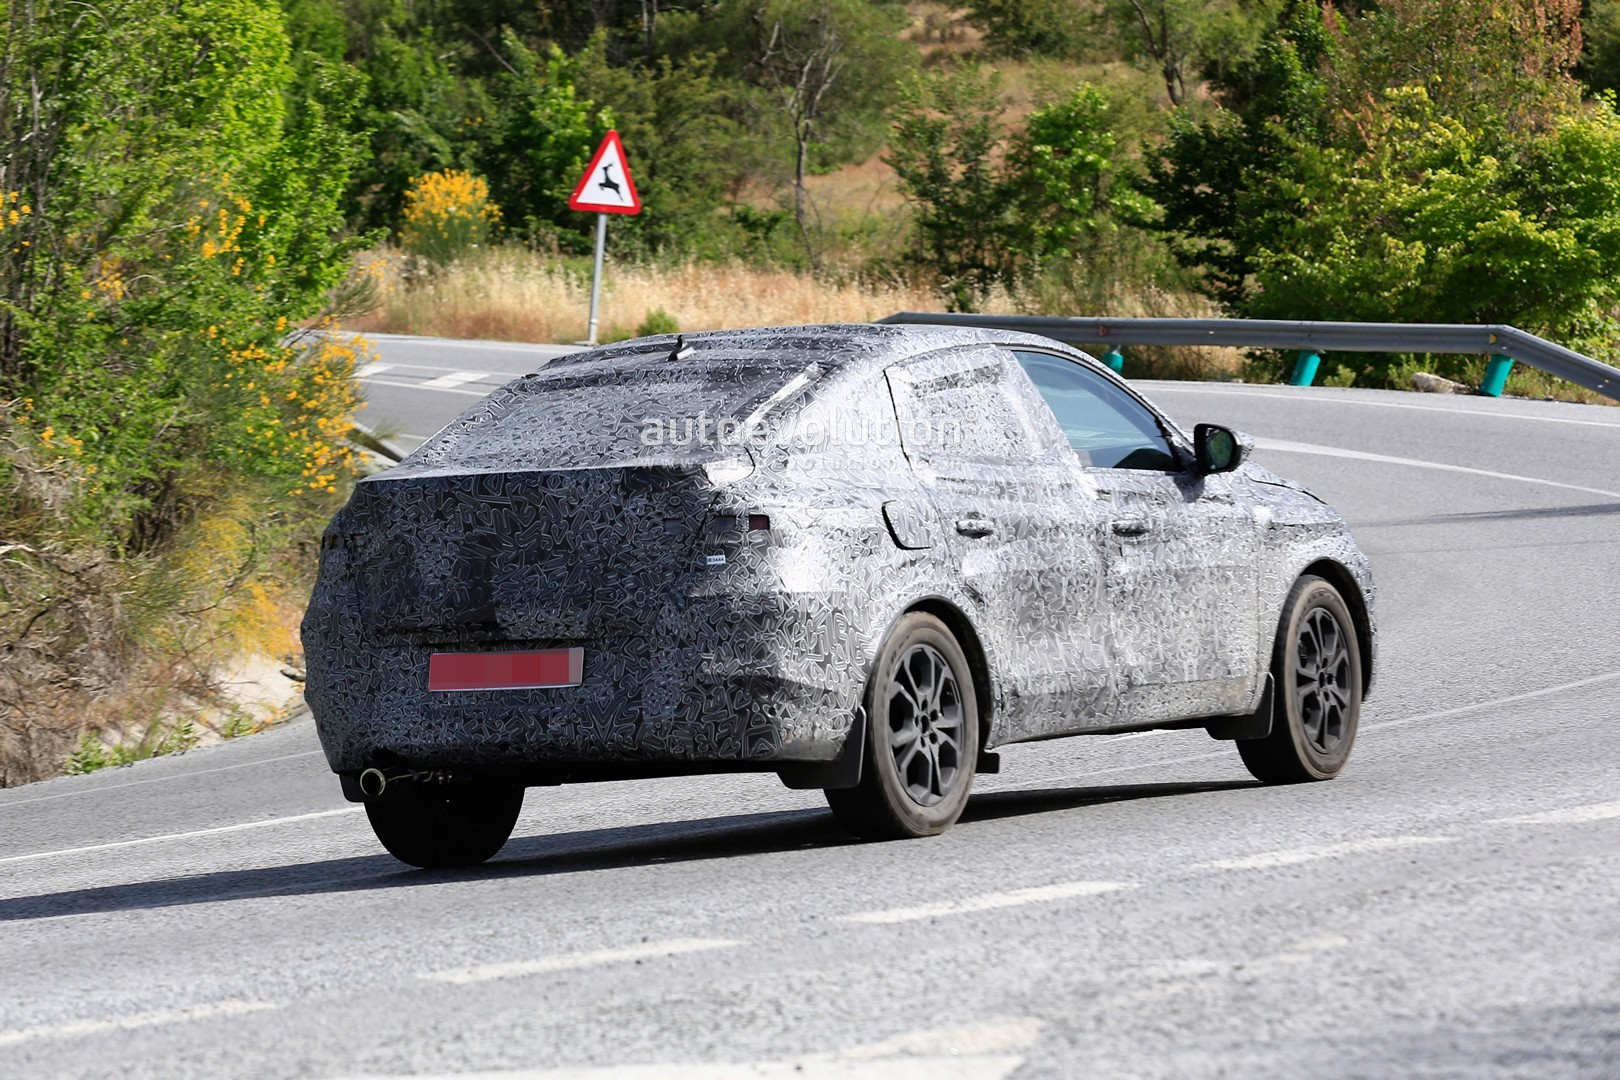 Spyshots Renault Captur Coupe Is A Bmw X6 For People On A